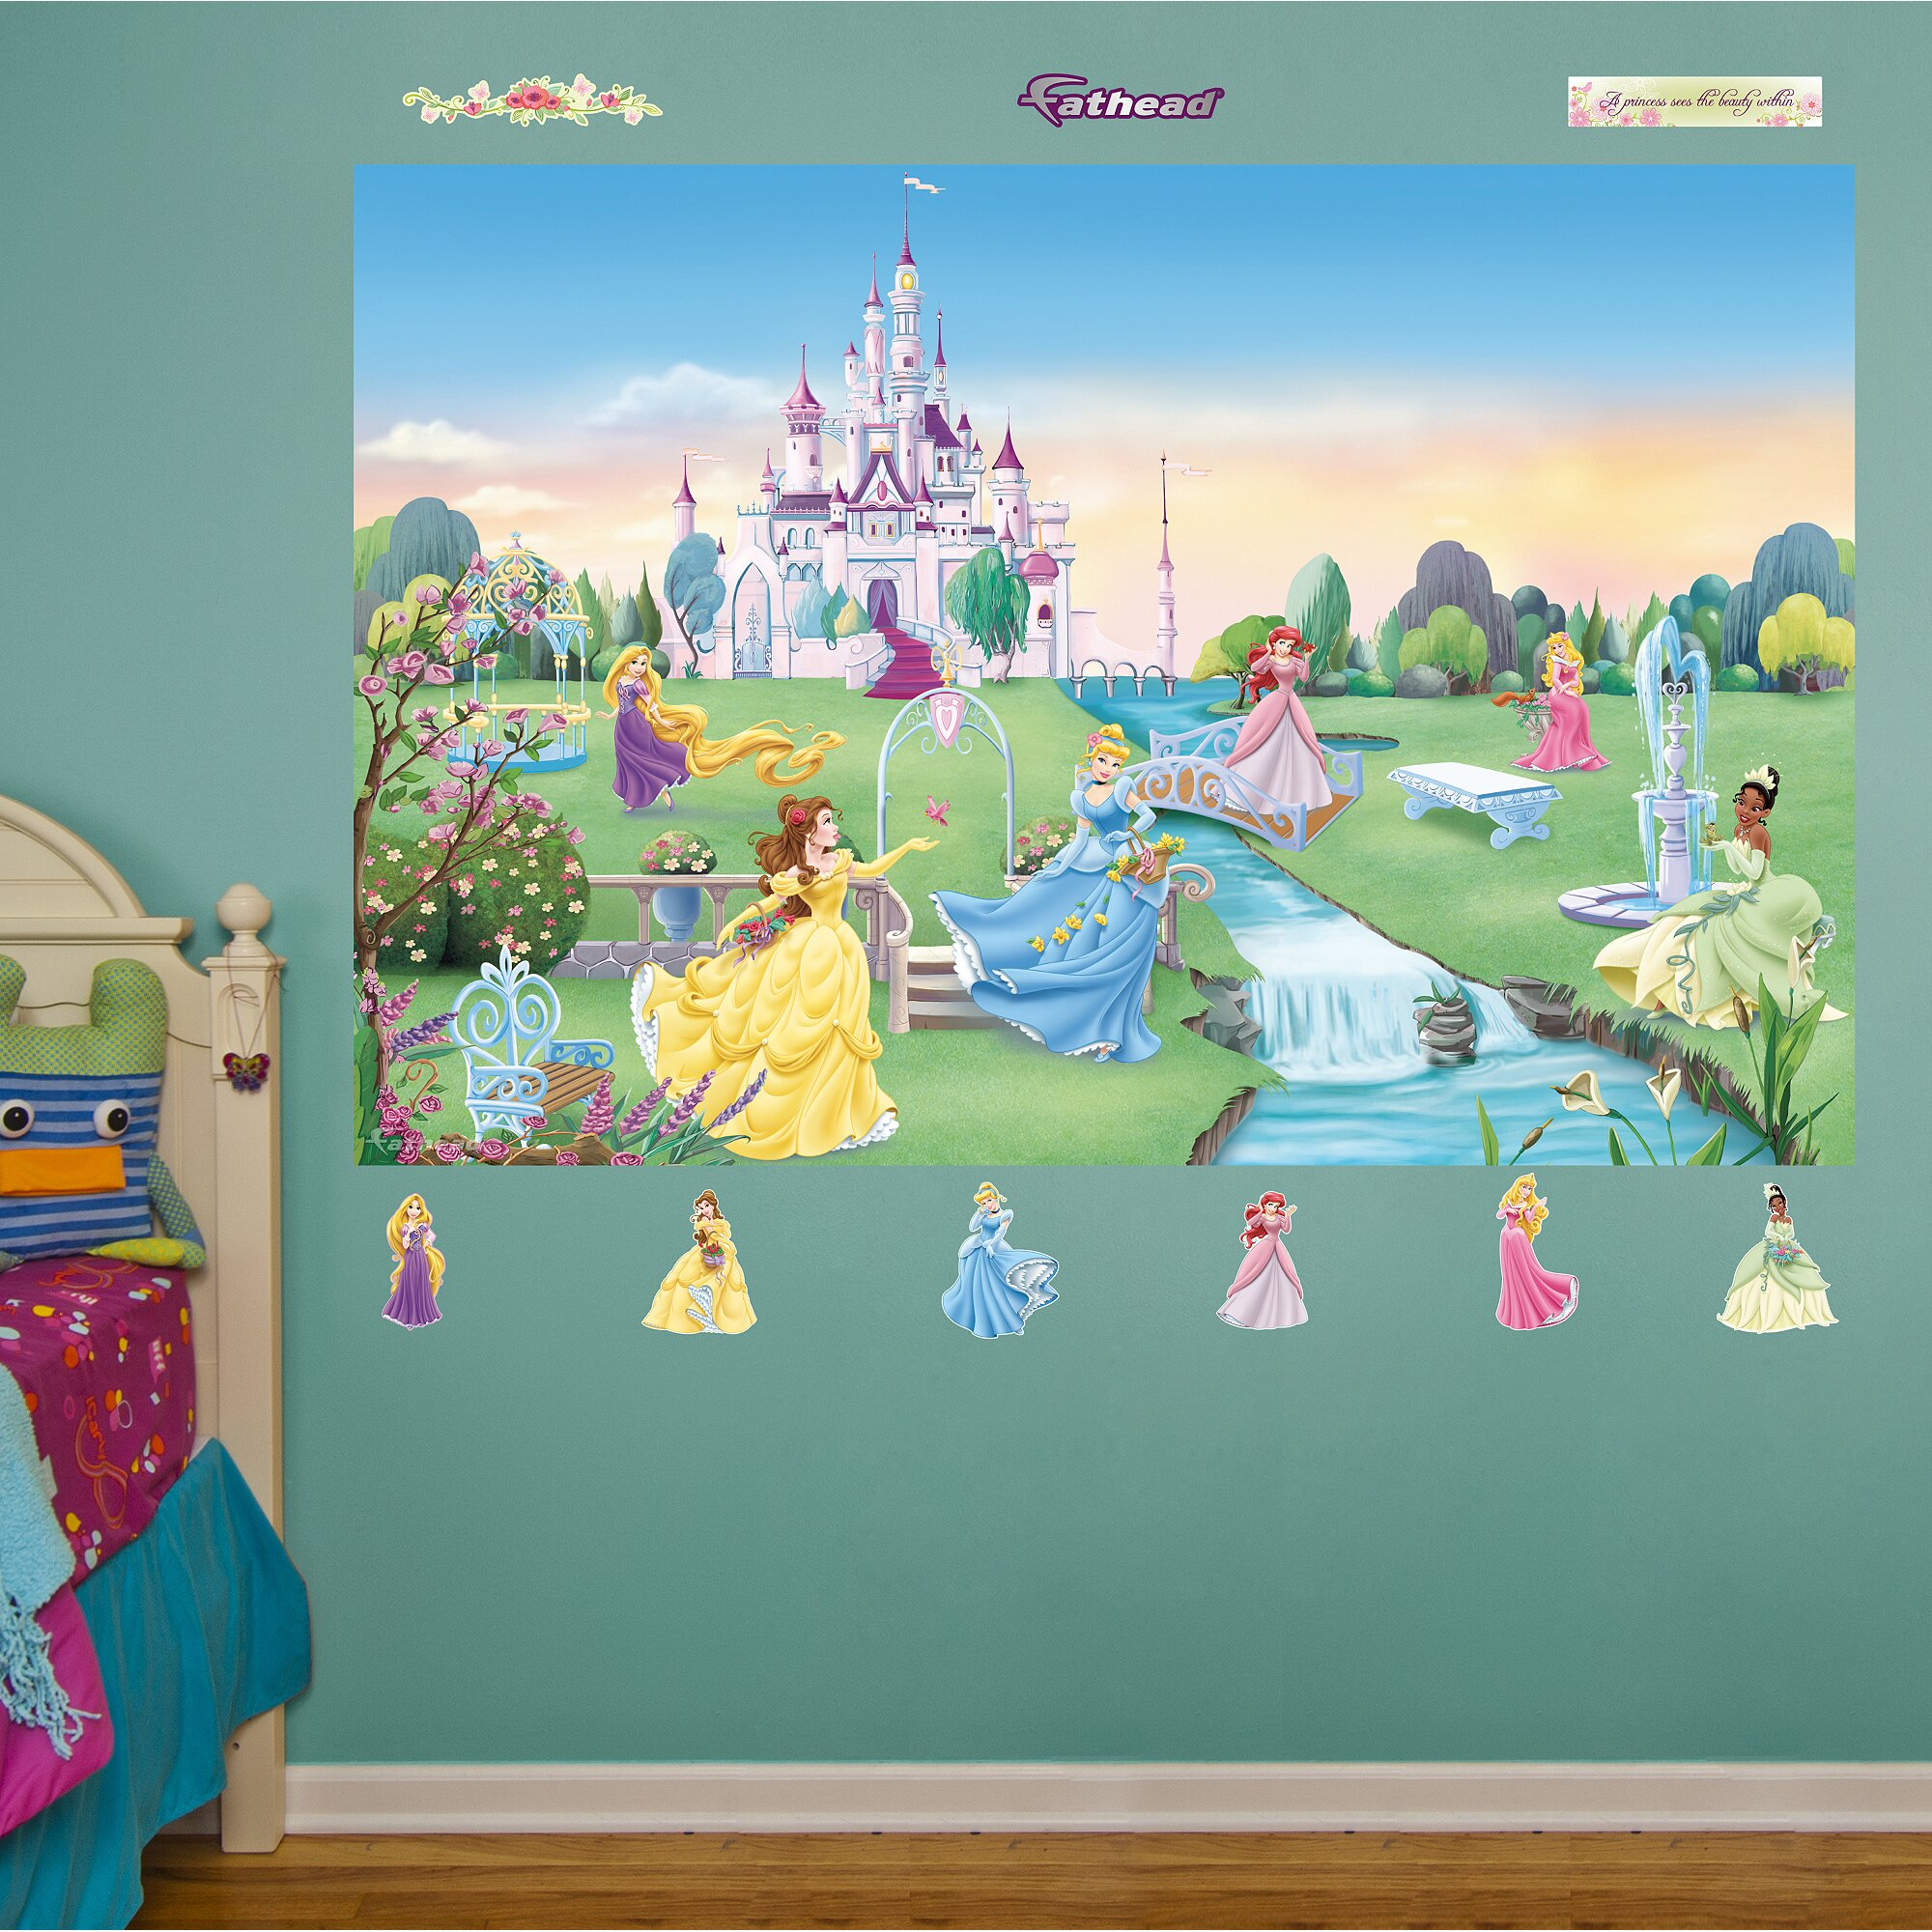 Fathead disney princess wall mural reviews wayfair for Disney princess mini mural